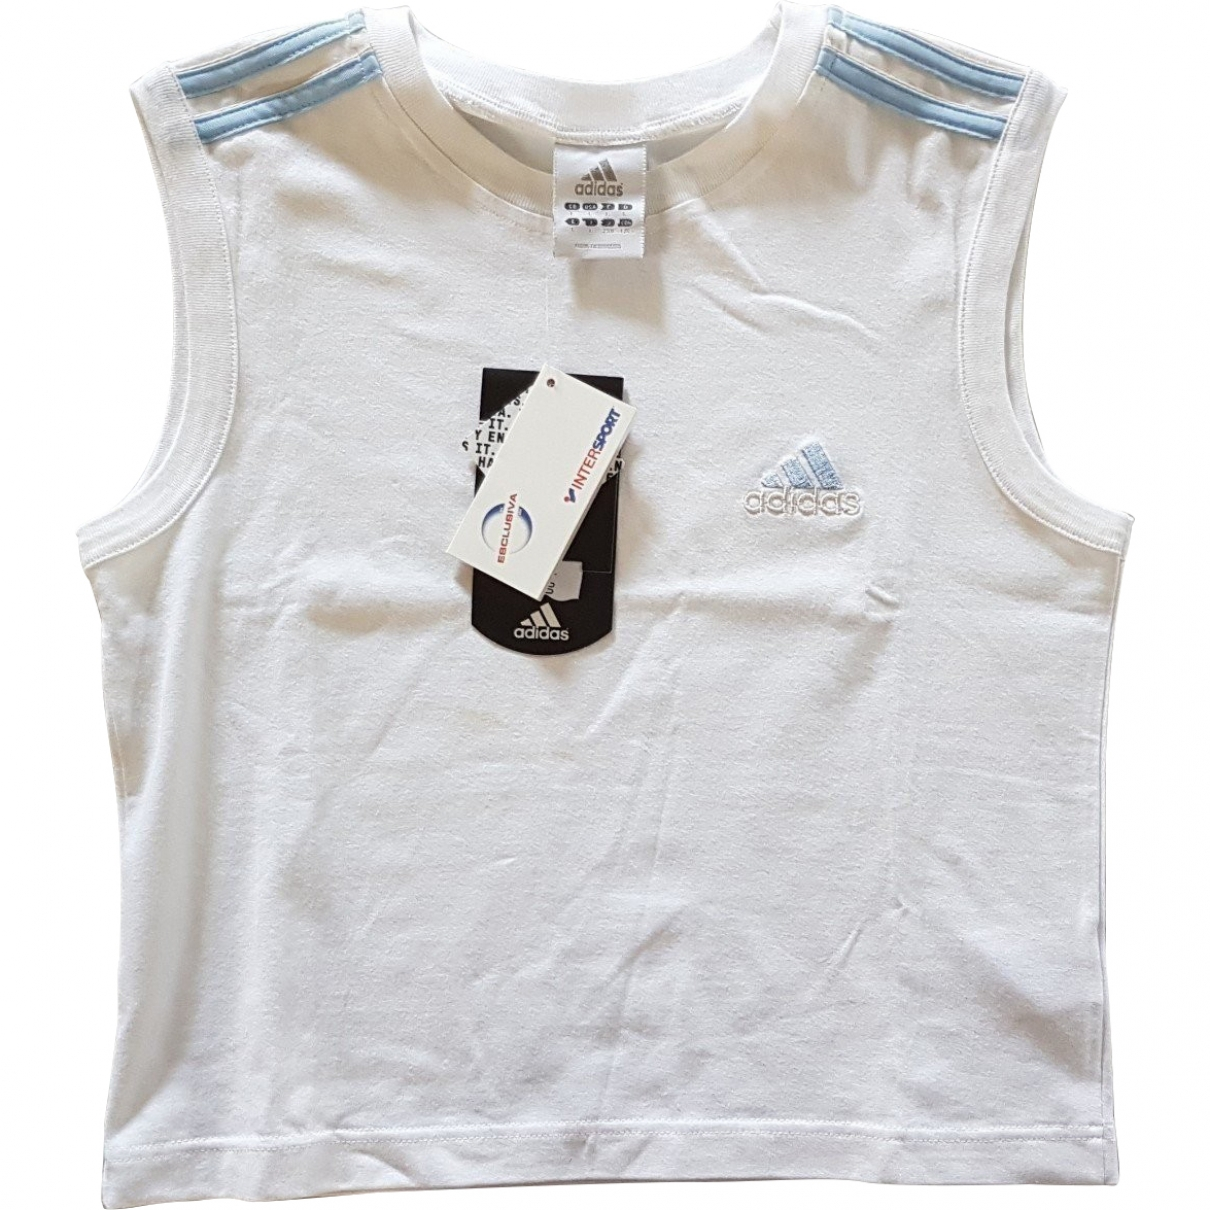 Adidas \N White Cotton  top for Women L International